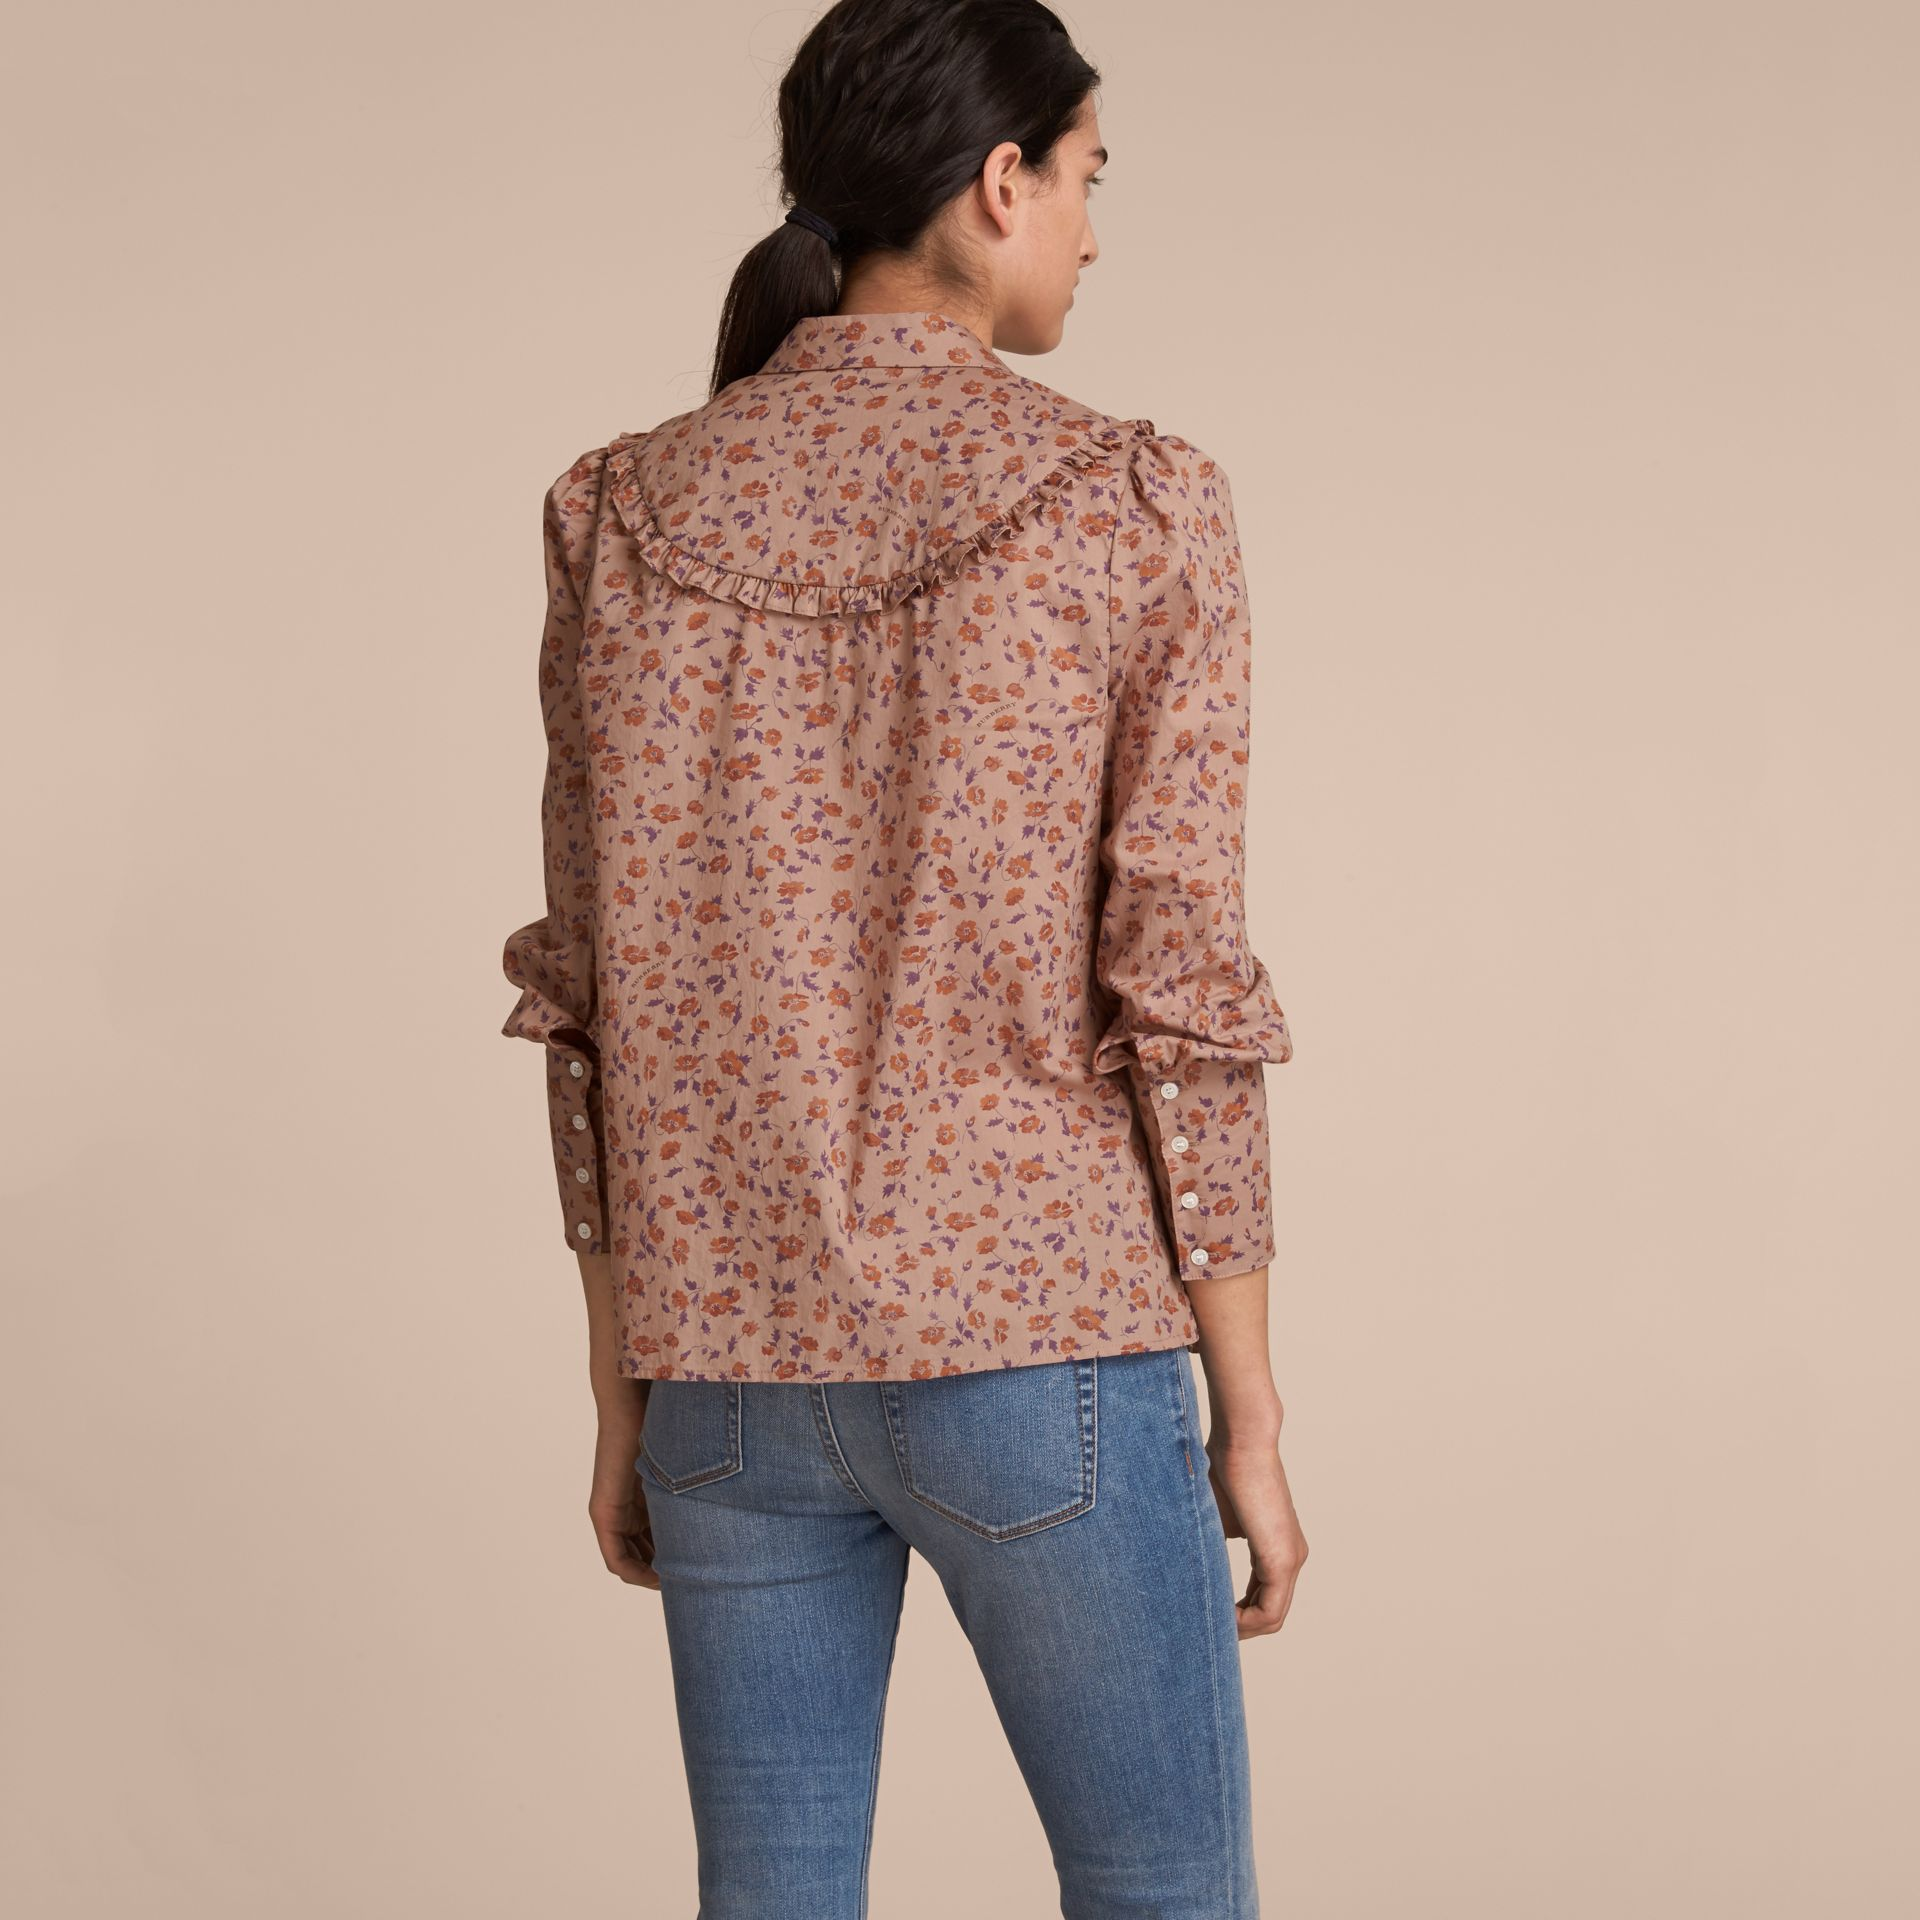 Ruffle Yoke Floral Print Cotton Shirt in Light Copper - Women | Burberry Canada - gallery image 3